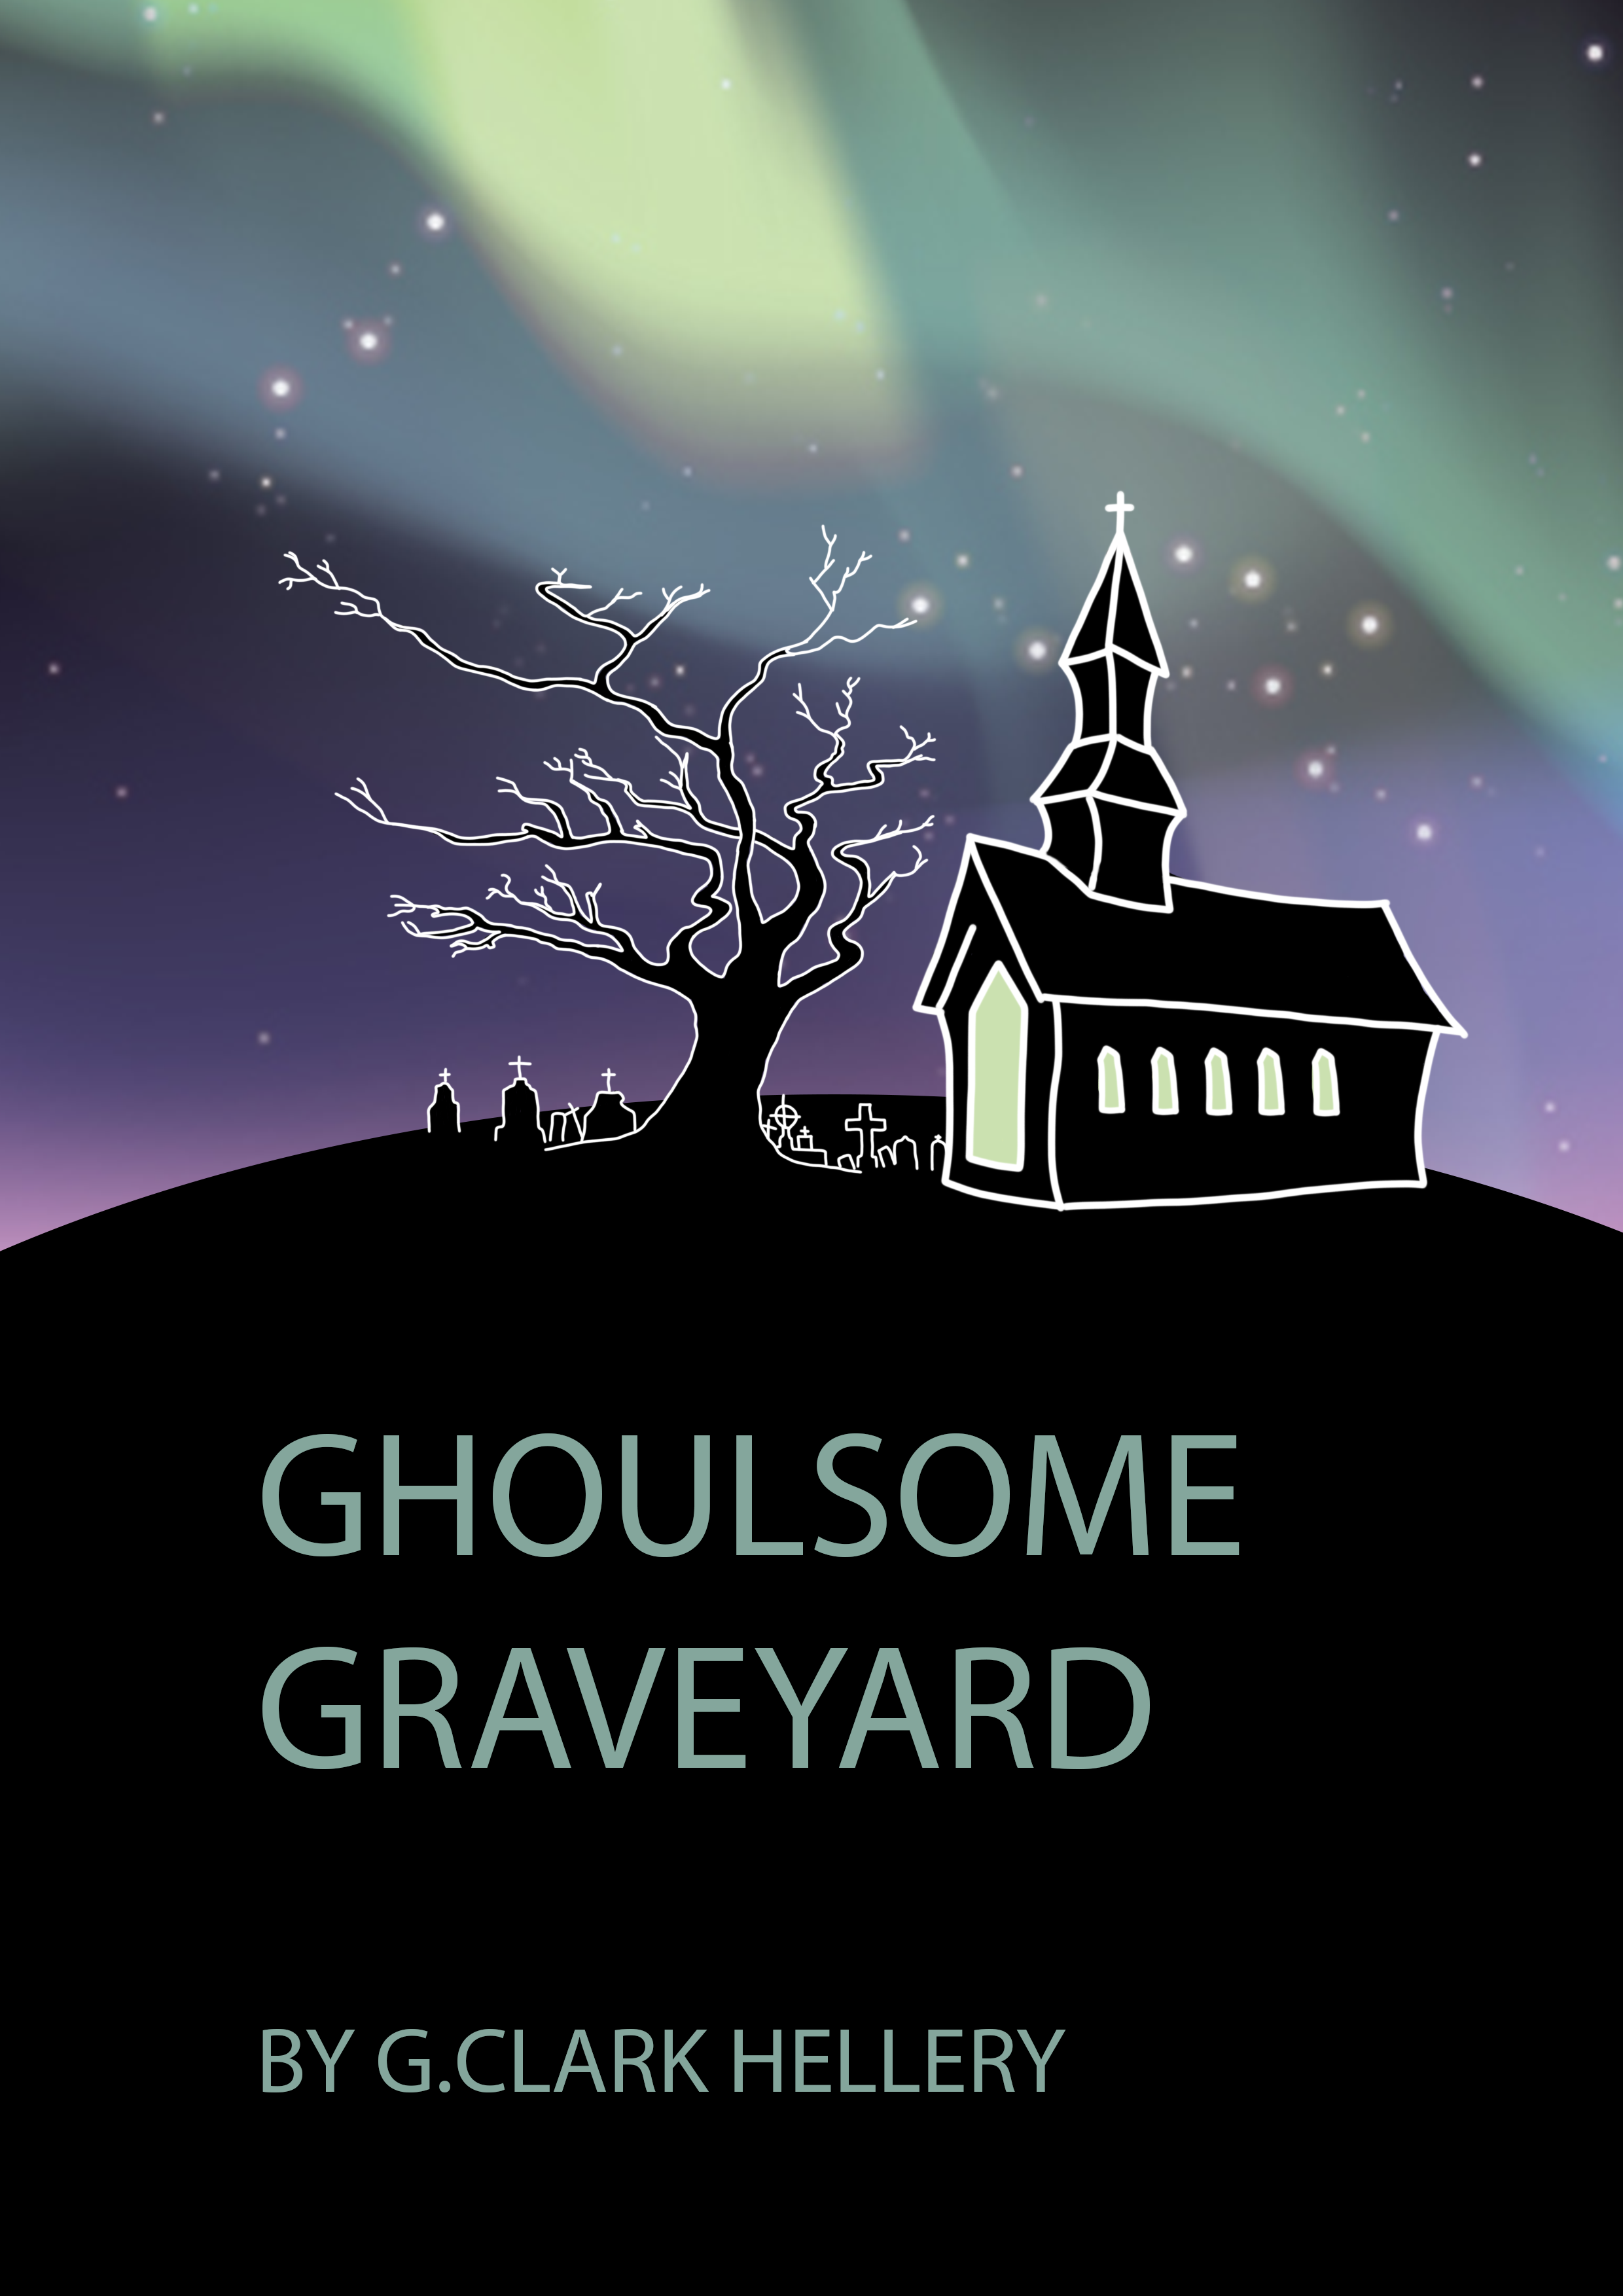 Ghoulsome Graveyard